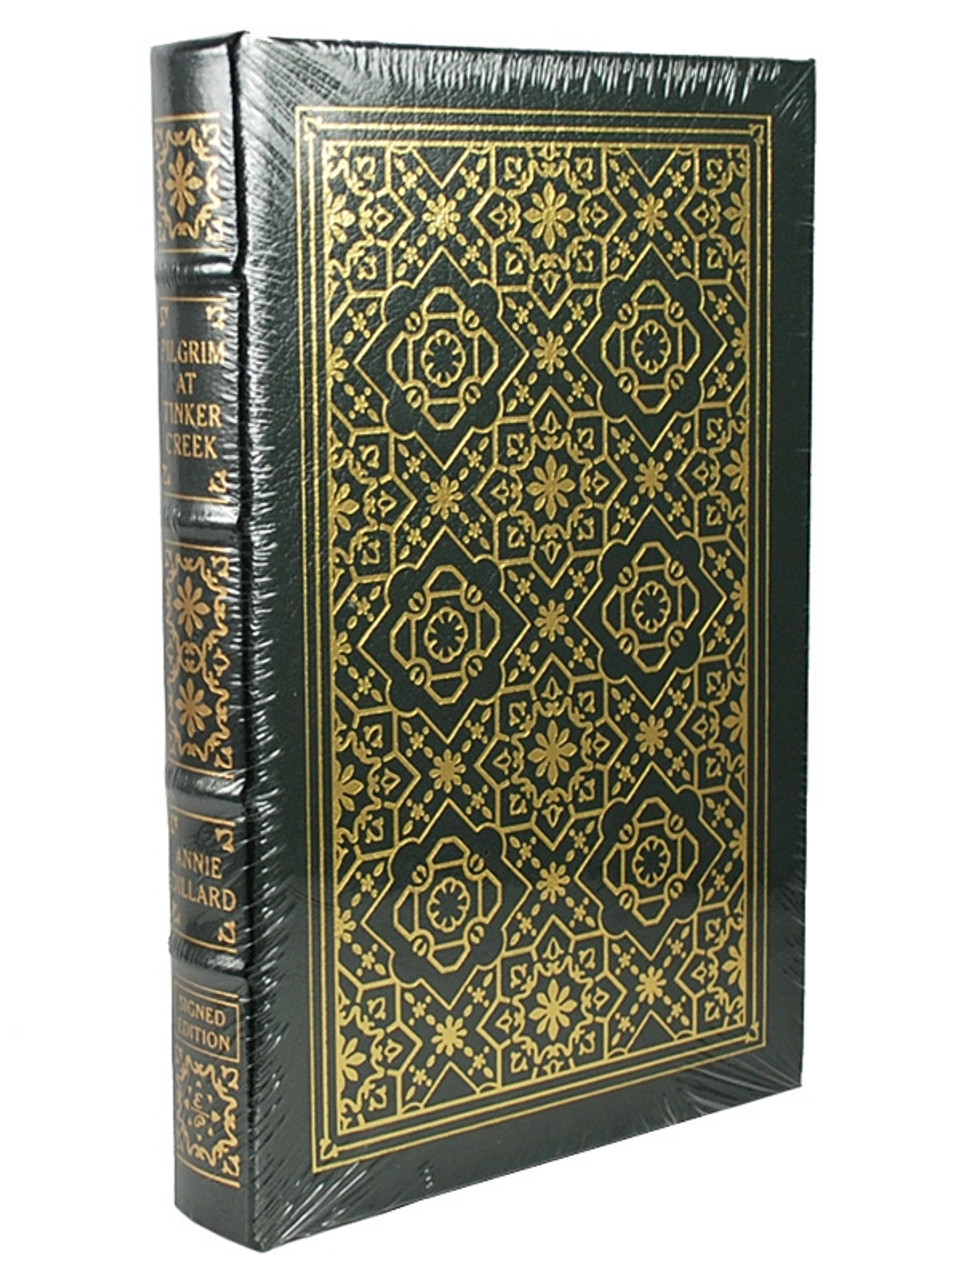 Easton Press Anne Dillard Pilgrim at Tinker Creek Signed Limited Edition